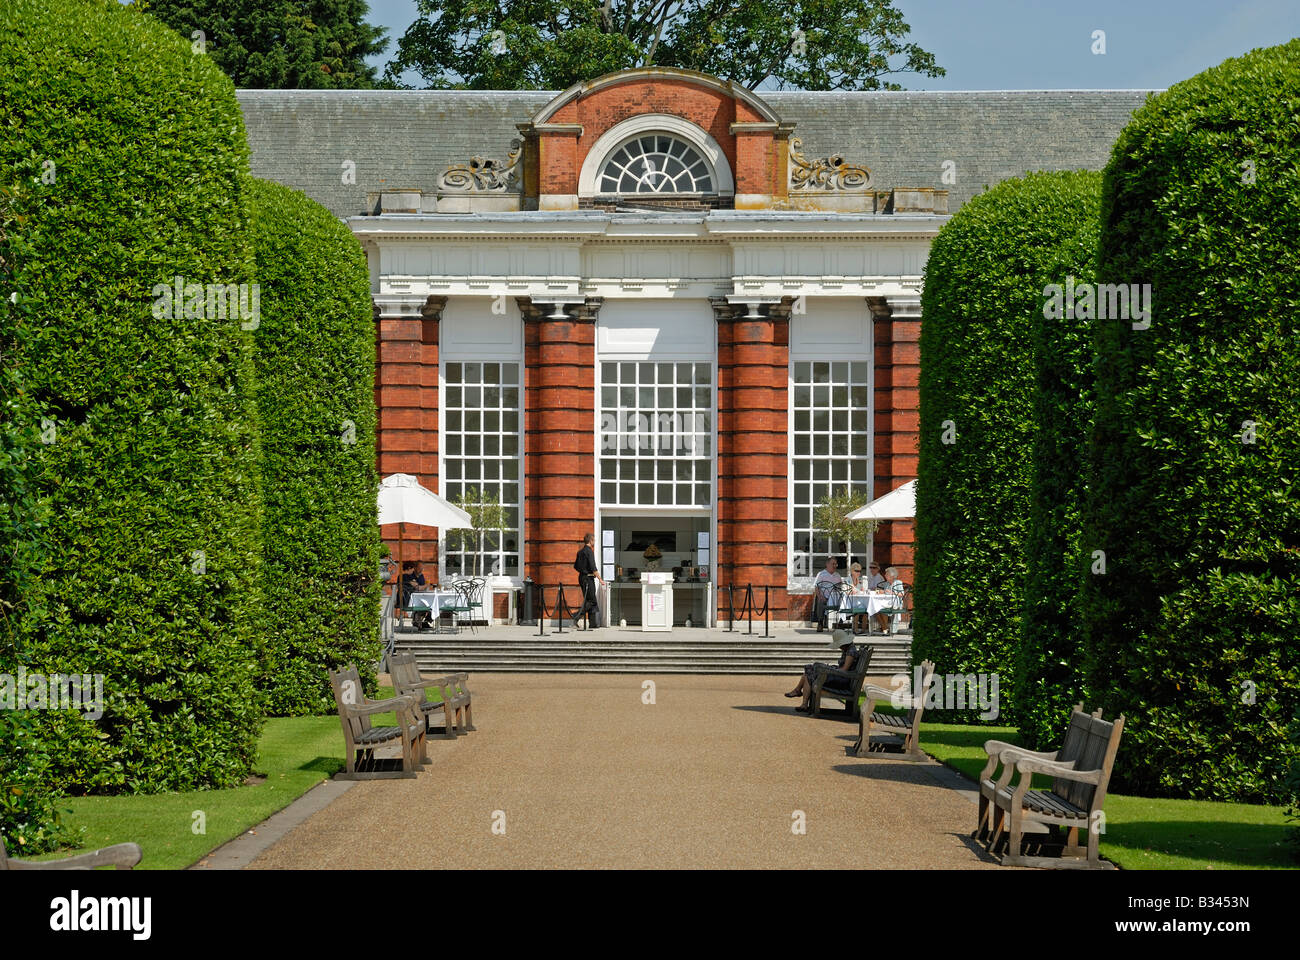 Surprising Gardens And Orangery Stock Photos  Gardens And Orangery Stock  With Fascinating Queen Annes Orangery Kensington Gardens Kensington Palace London   Stock Image With Attractive Garden Buildings Direct Review Also Italian Gardens Eastbourne In Addition Kew Gardens Venue Hire And Best Italian In Covent Garden As Well As Hatton Garden Gold Additionally Merriments Garden From Alamycom With   Fascinating Gardens And Orangery Stock Photos  Gardens And Orangery Stock  With Attractive Queen Annes Orangery Kensington Gardens Kensington Palace London   Stock Image And Surprising Garden Buildings Direct Review Also Italian Gardens Eastbourne In Addition Kew Gardens Venue Hire From Alamycom